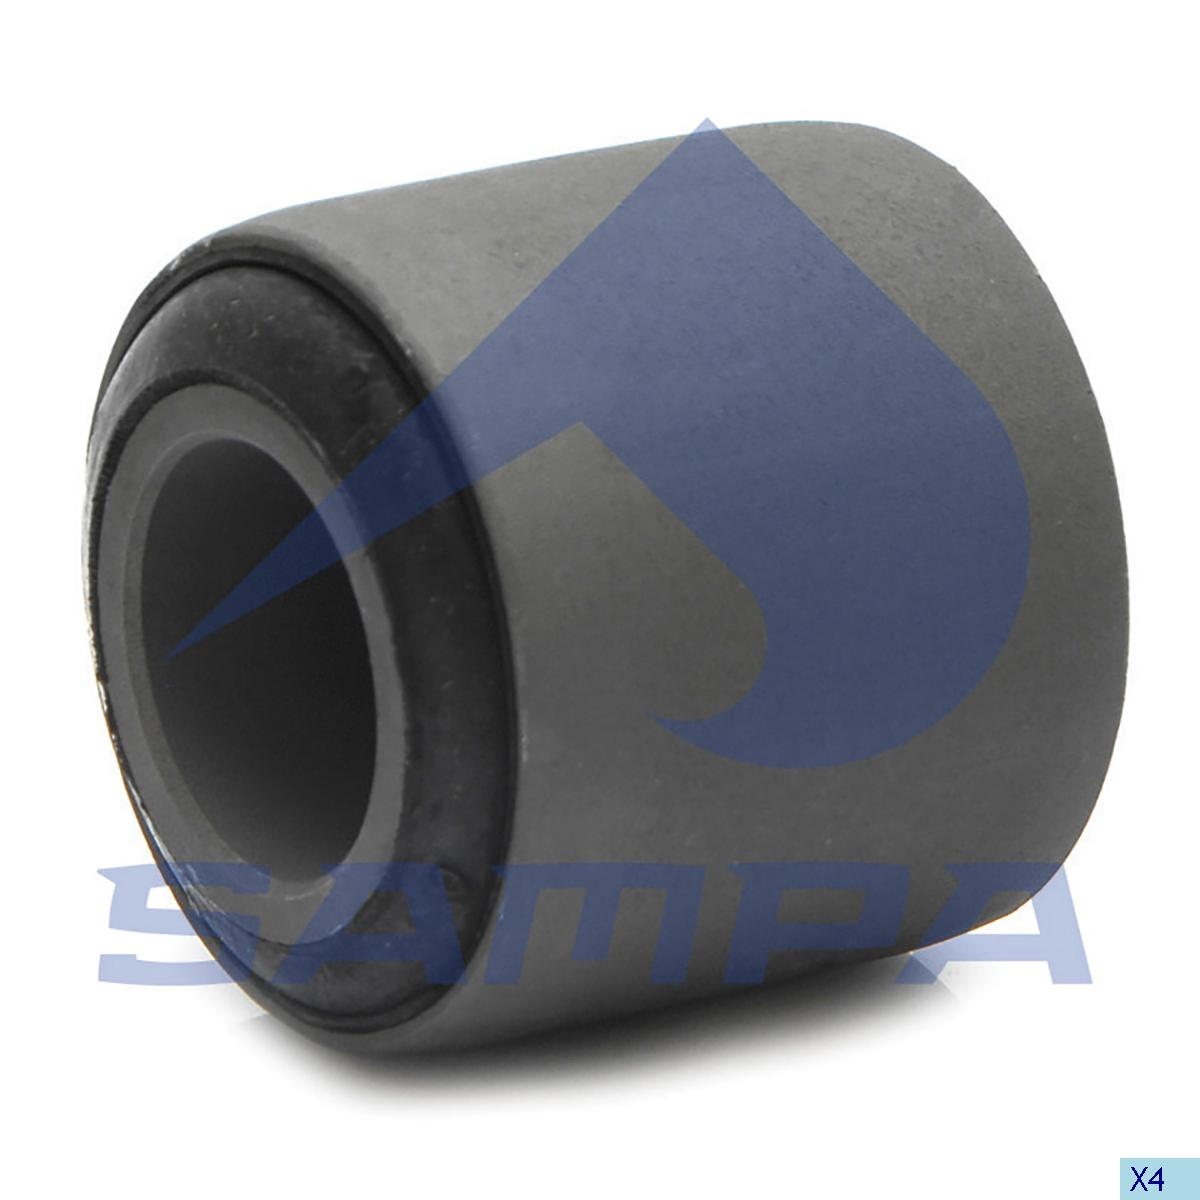 Rubber Bushing, Stabilizer Bar, Volvo, Suspension